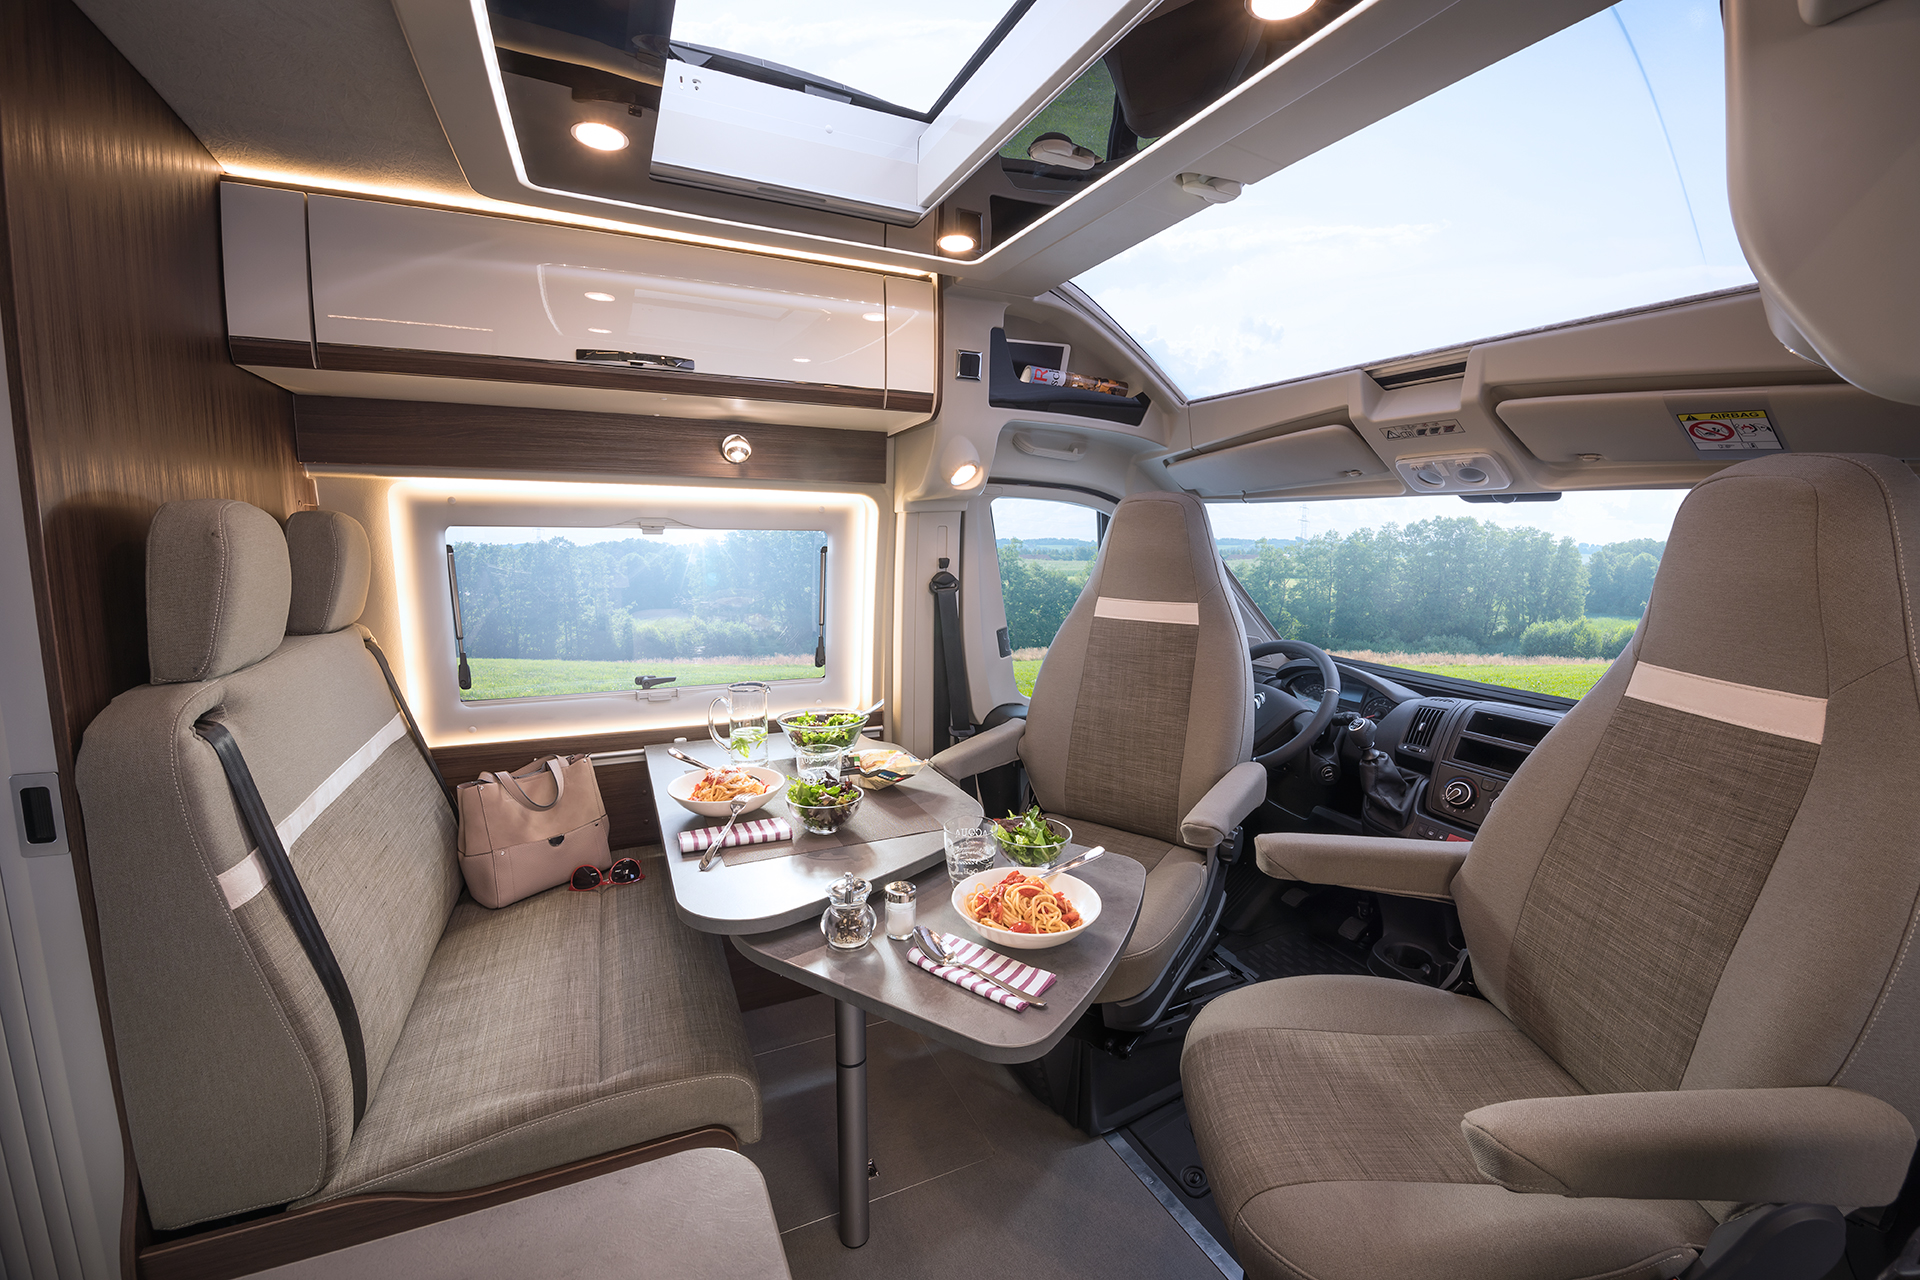 Interior images of the Globecar Summit Prime 600